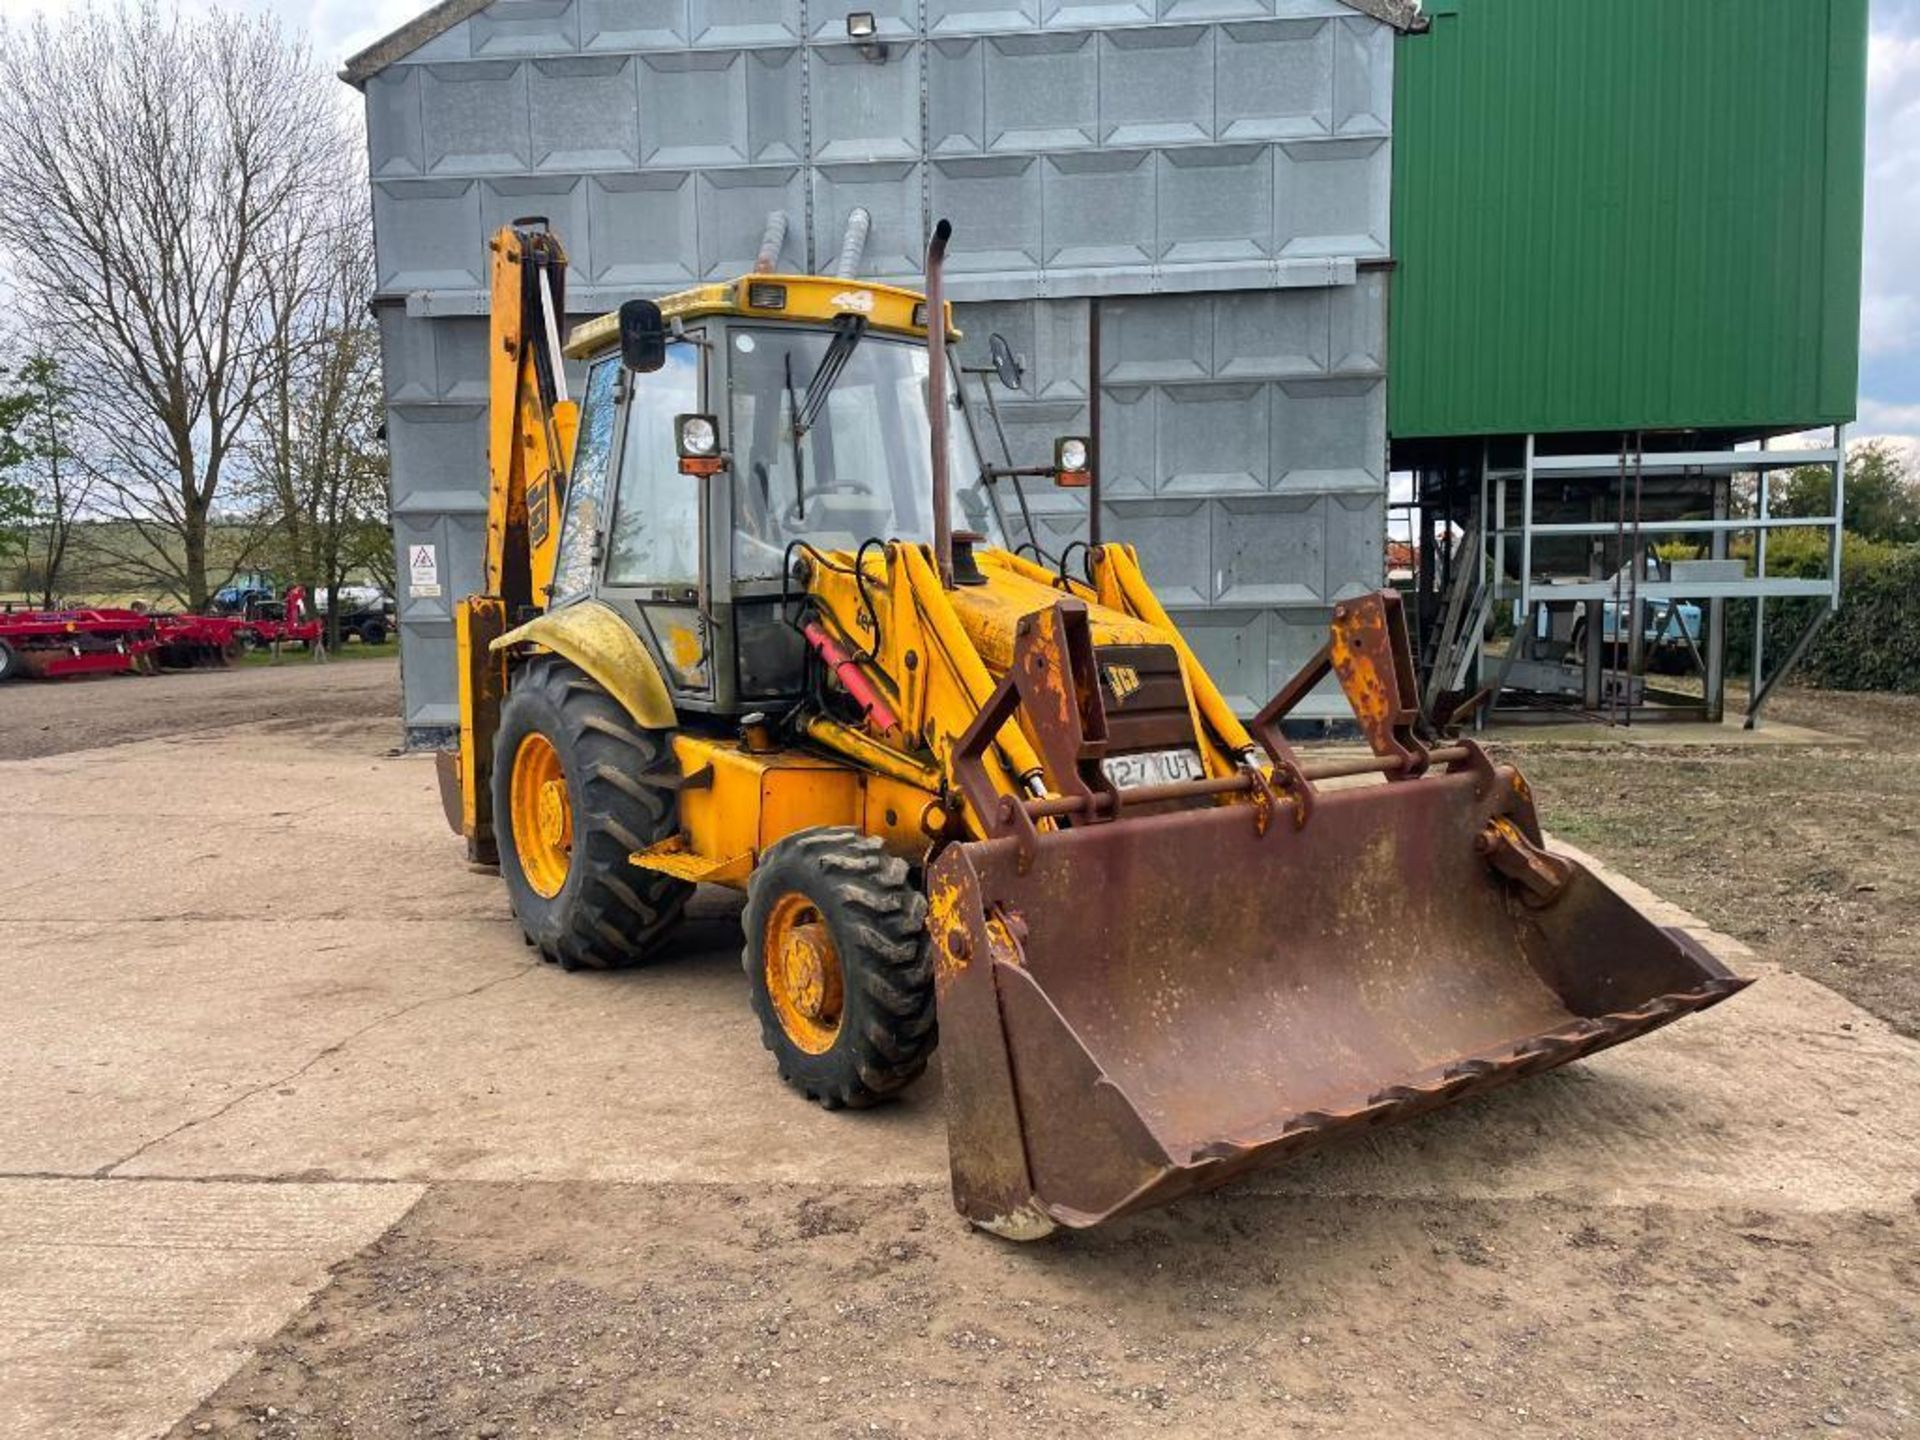 1993 JCB 3CX Sitemaster 4wd back hoe loader with 3 in 1 bucket on 10.5/80-18 front and 18.4-26 rear - Image 10 of 14